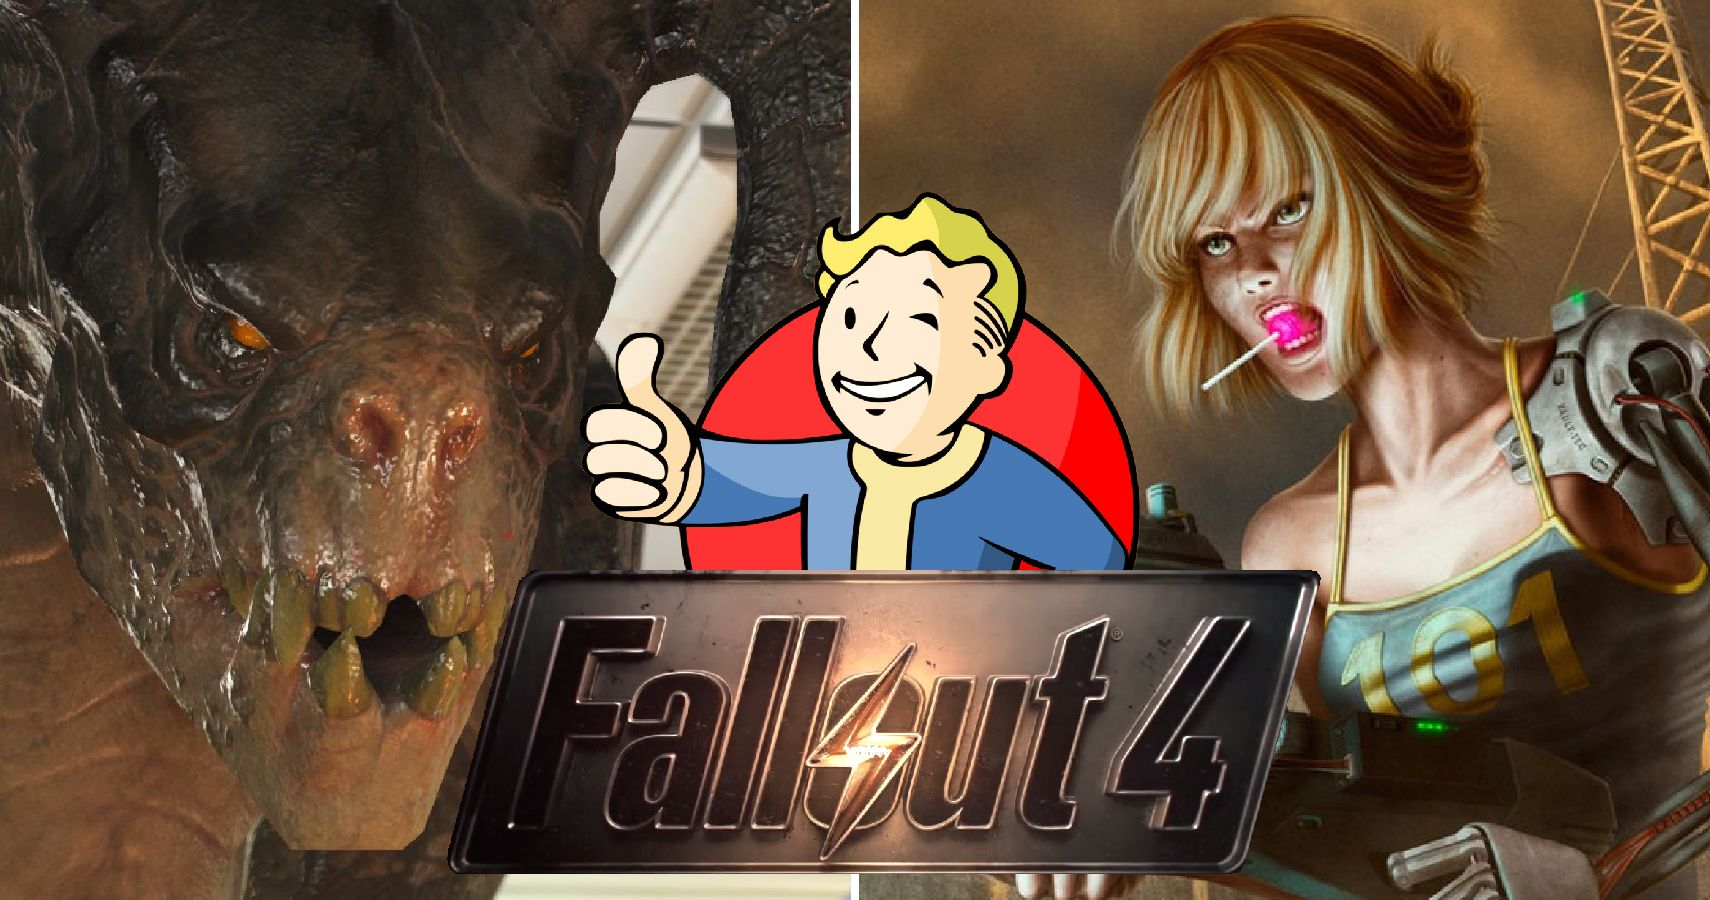 Awesome Side Quests You Didn't Know About In Fallout 4 | TheGamer